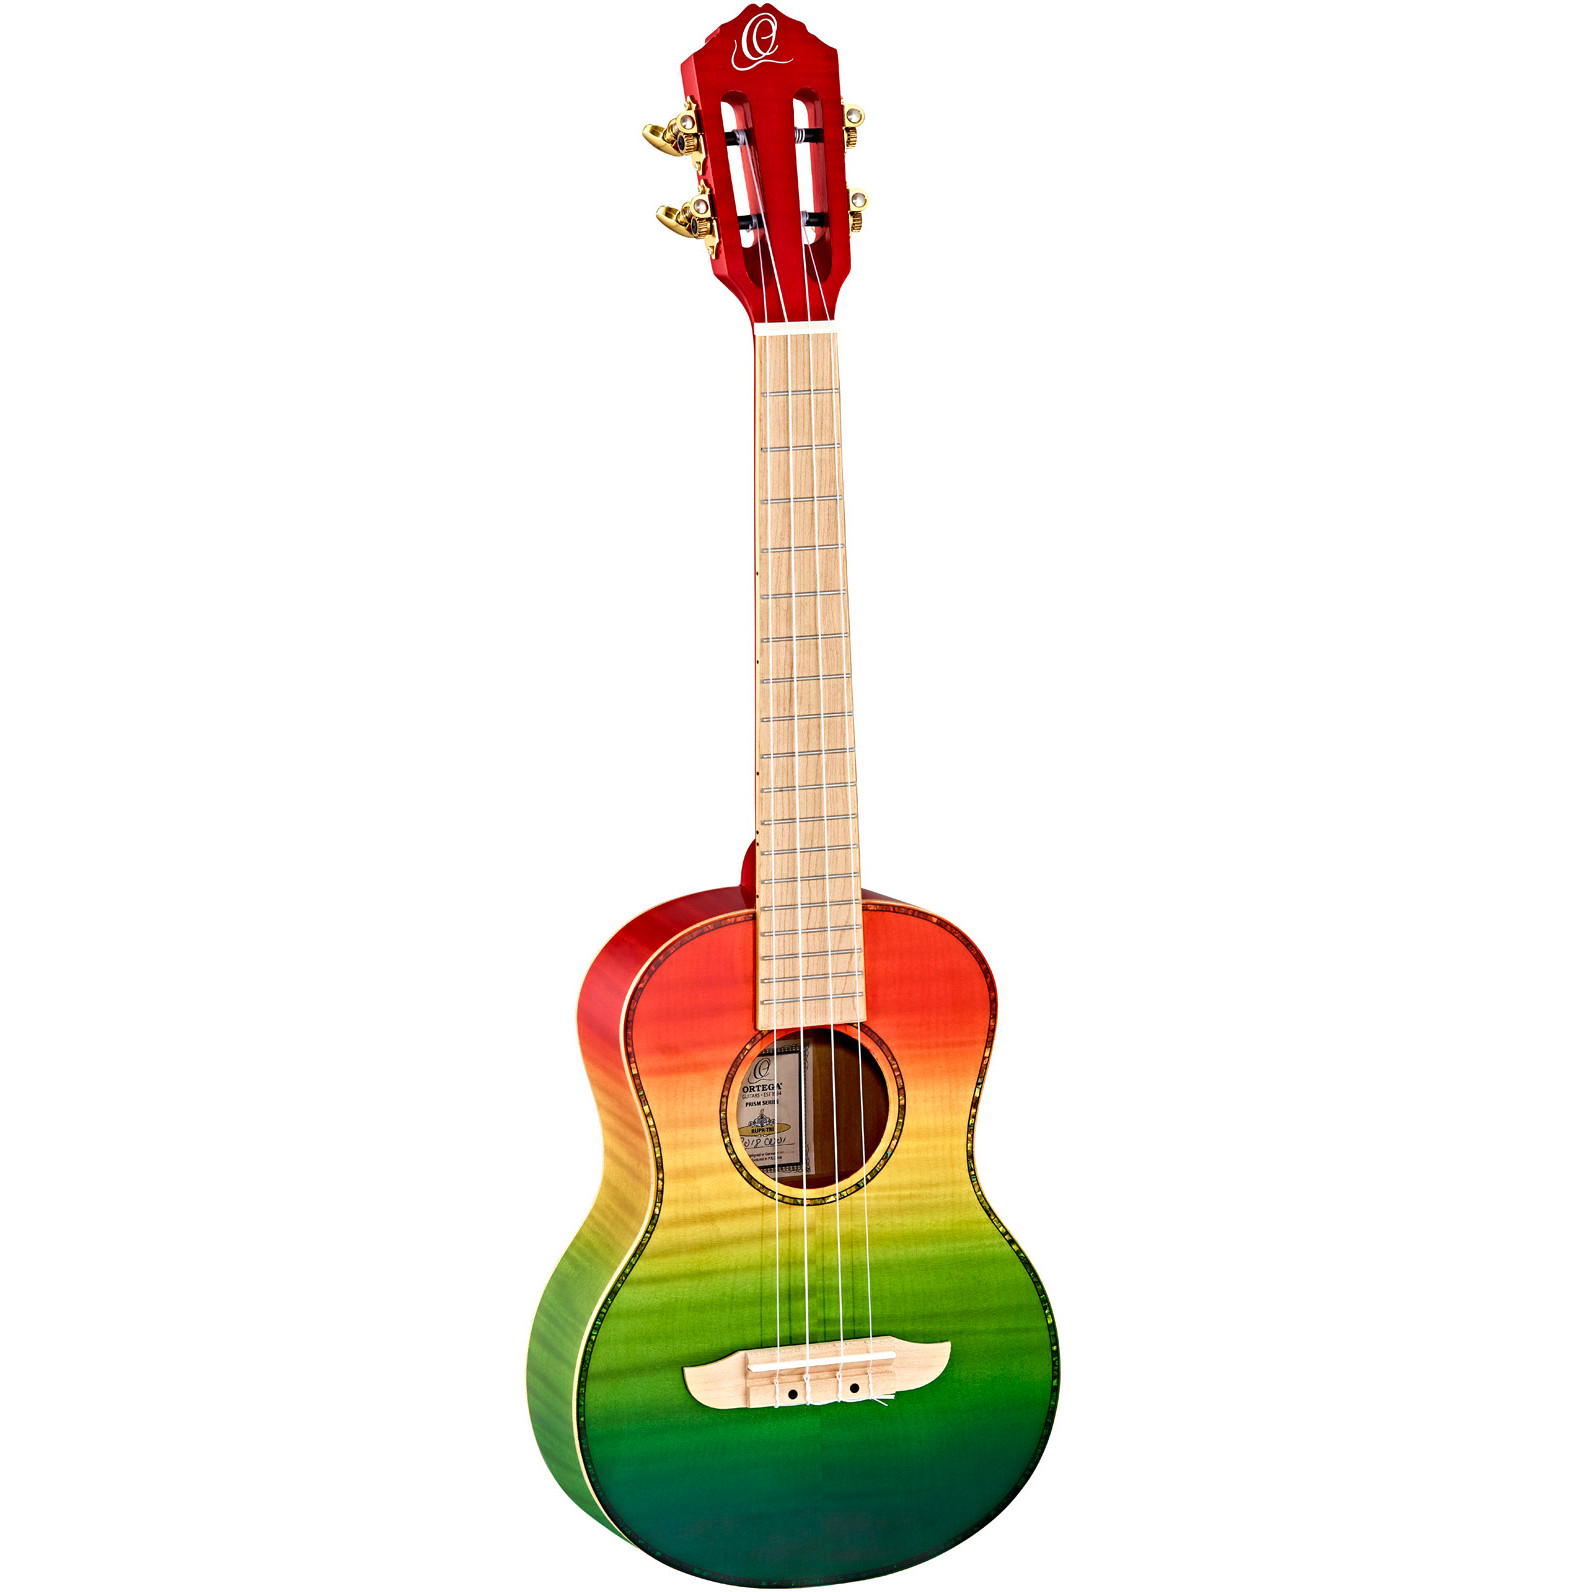 Ortega Prism series RUPR TRI tenor ukulele with bag